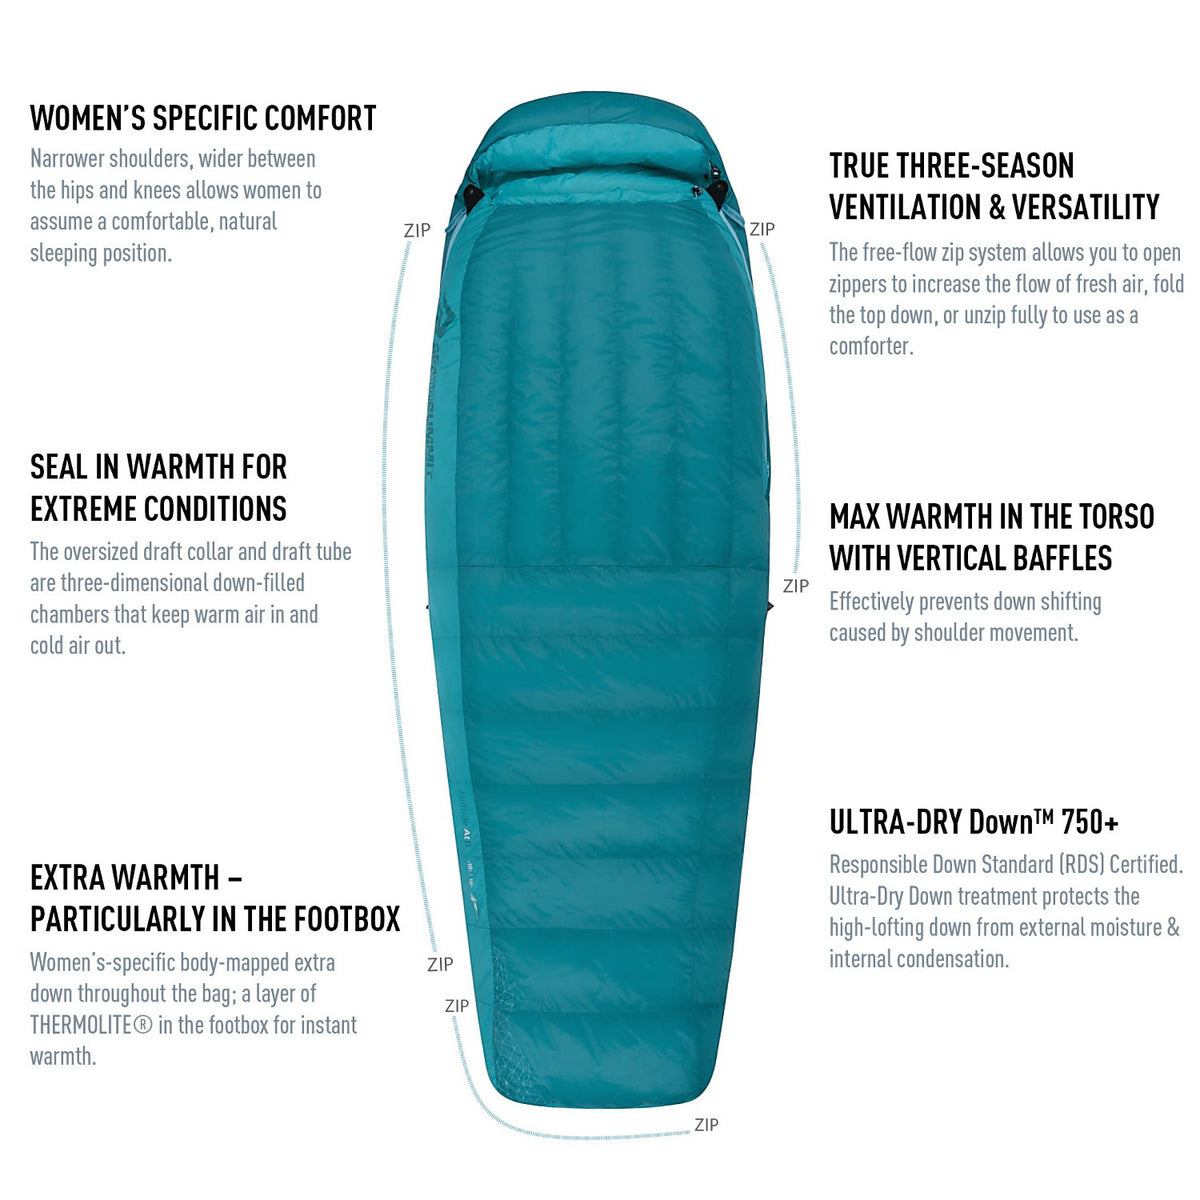 Sea to Summit Altitude II Women's sleeping bag, info sheet